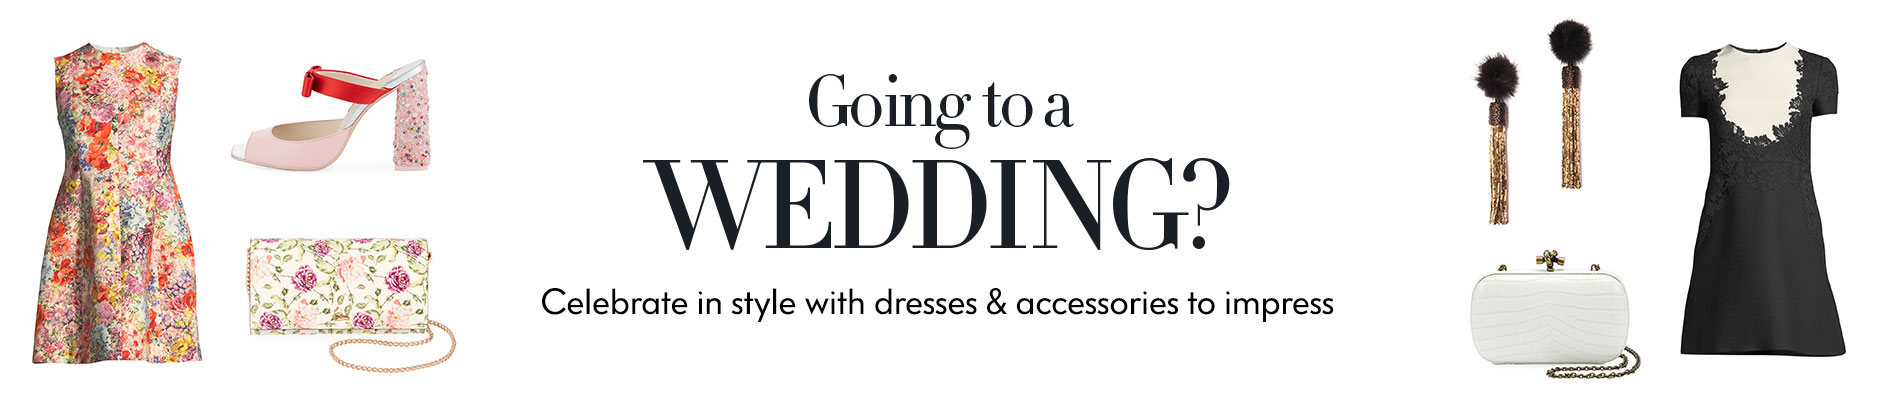 Going to a Wedding? Celebrate in style with dresses & accessories to impress